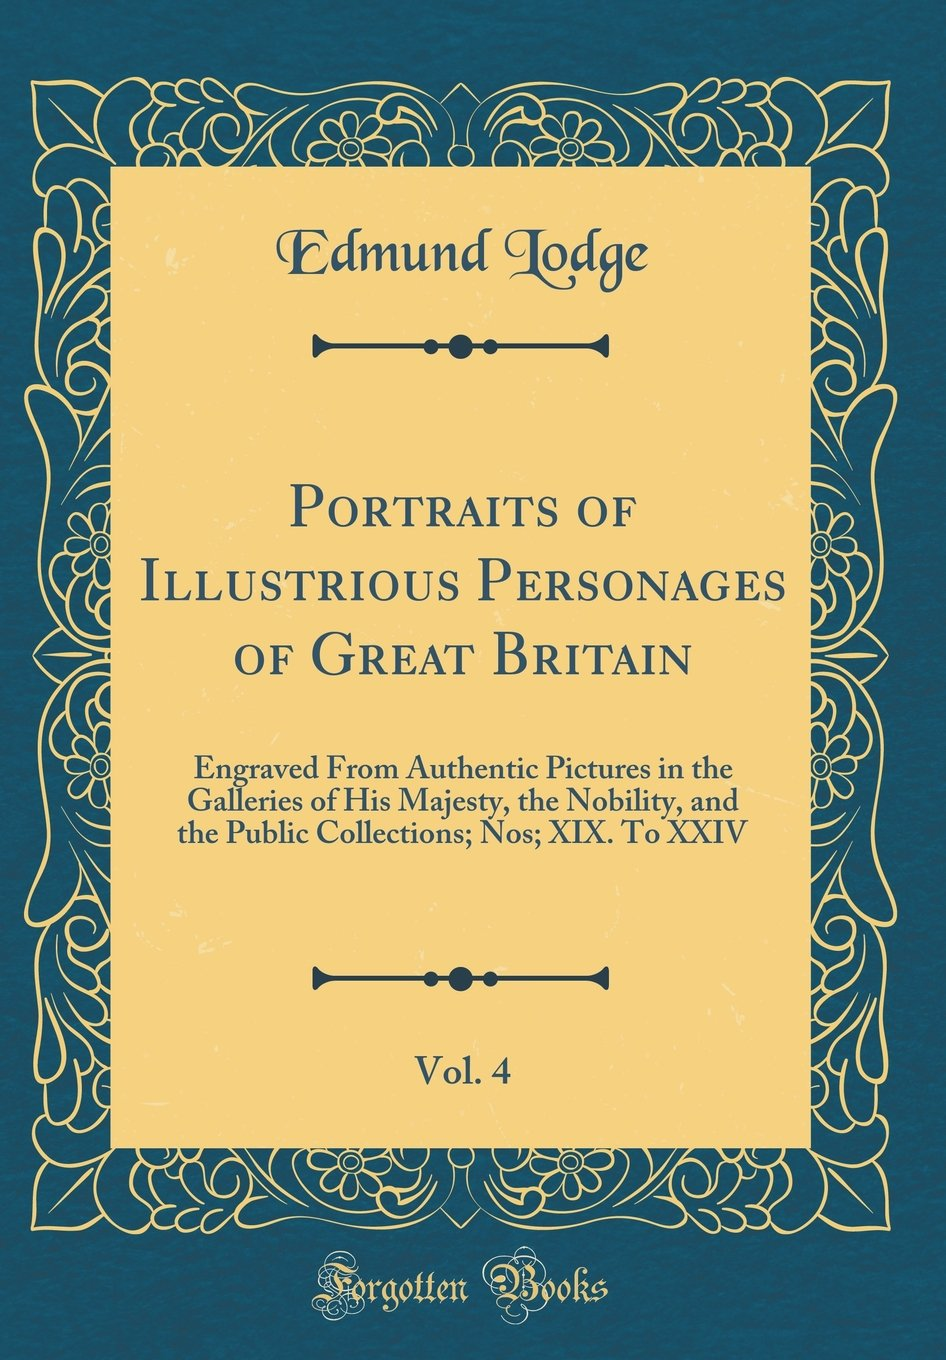 Download Portraits of Illustrious Personages of Great Britain, Vol. 4: Engraved From Authentic Pictures in the Galleries of His Majesty, the Nobility, and the ... Nos; XIX. To XXIV (Classic Reprint) pdf